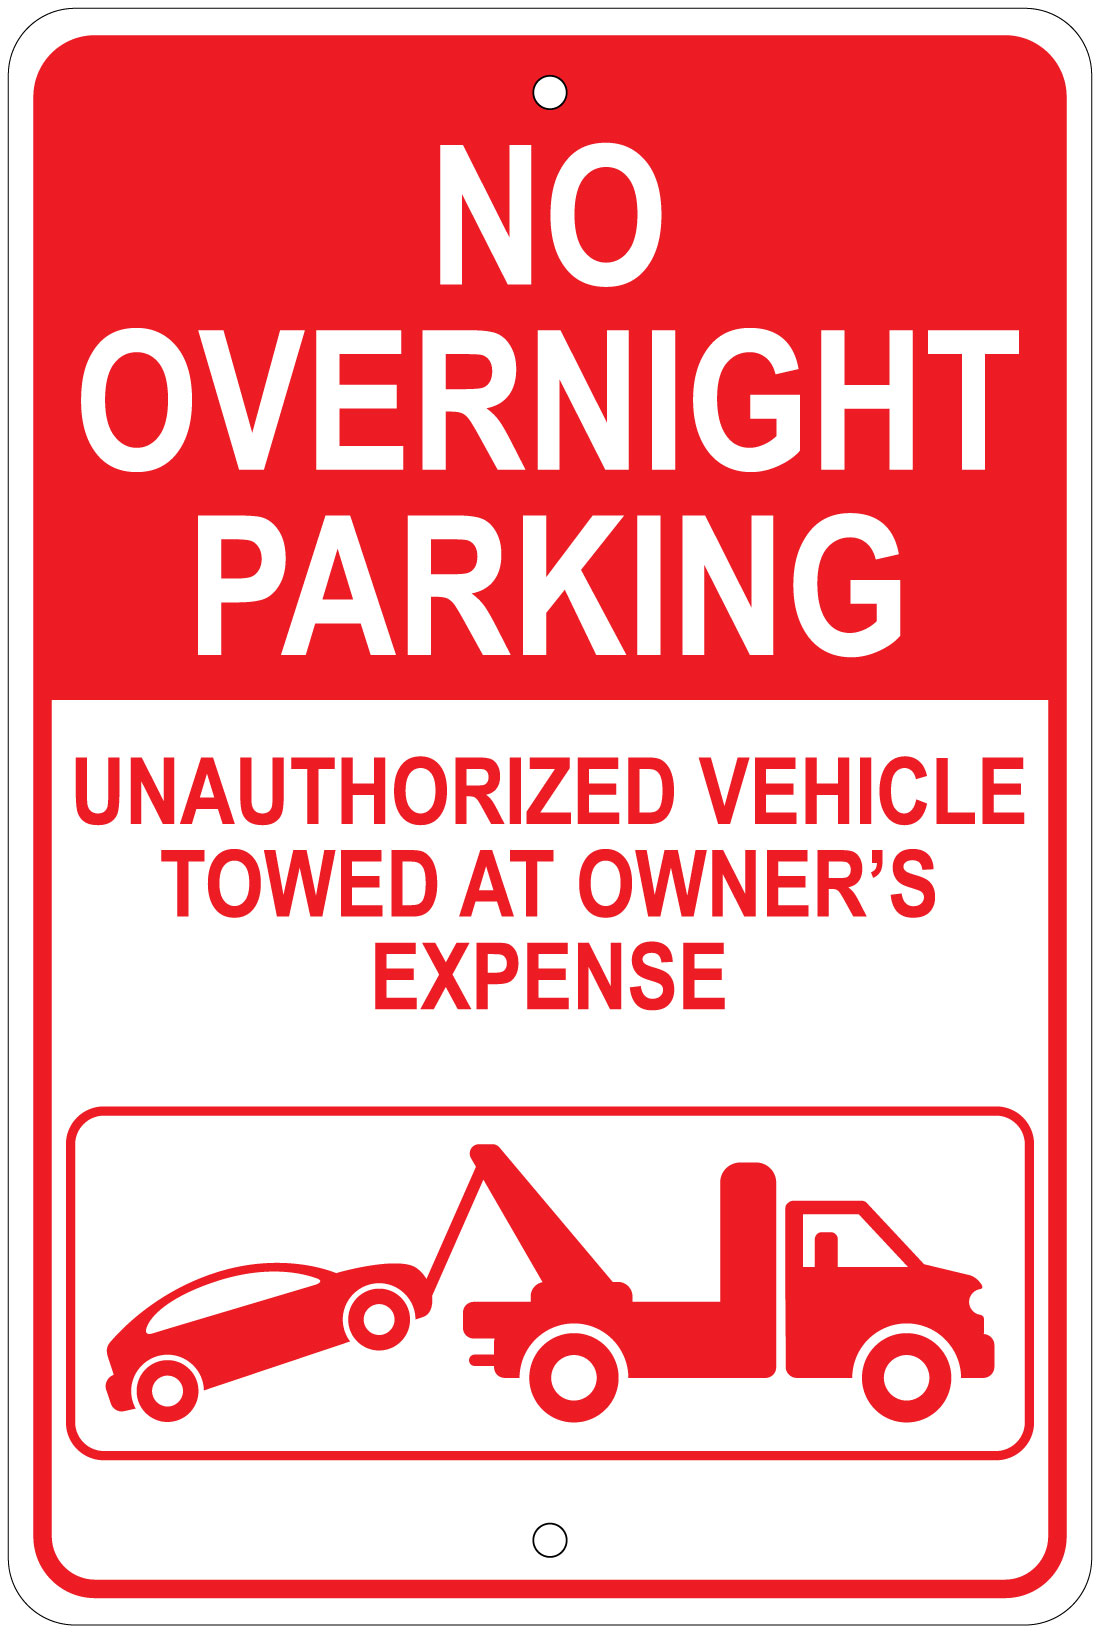 Out of Service Aluminum Sign Lyle Signs Inc S-8398-B-MG-10x14 Smartsign S-8398-B-AL-12x18Notice